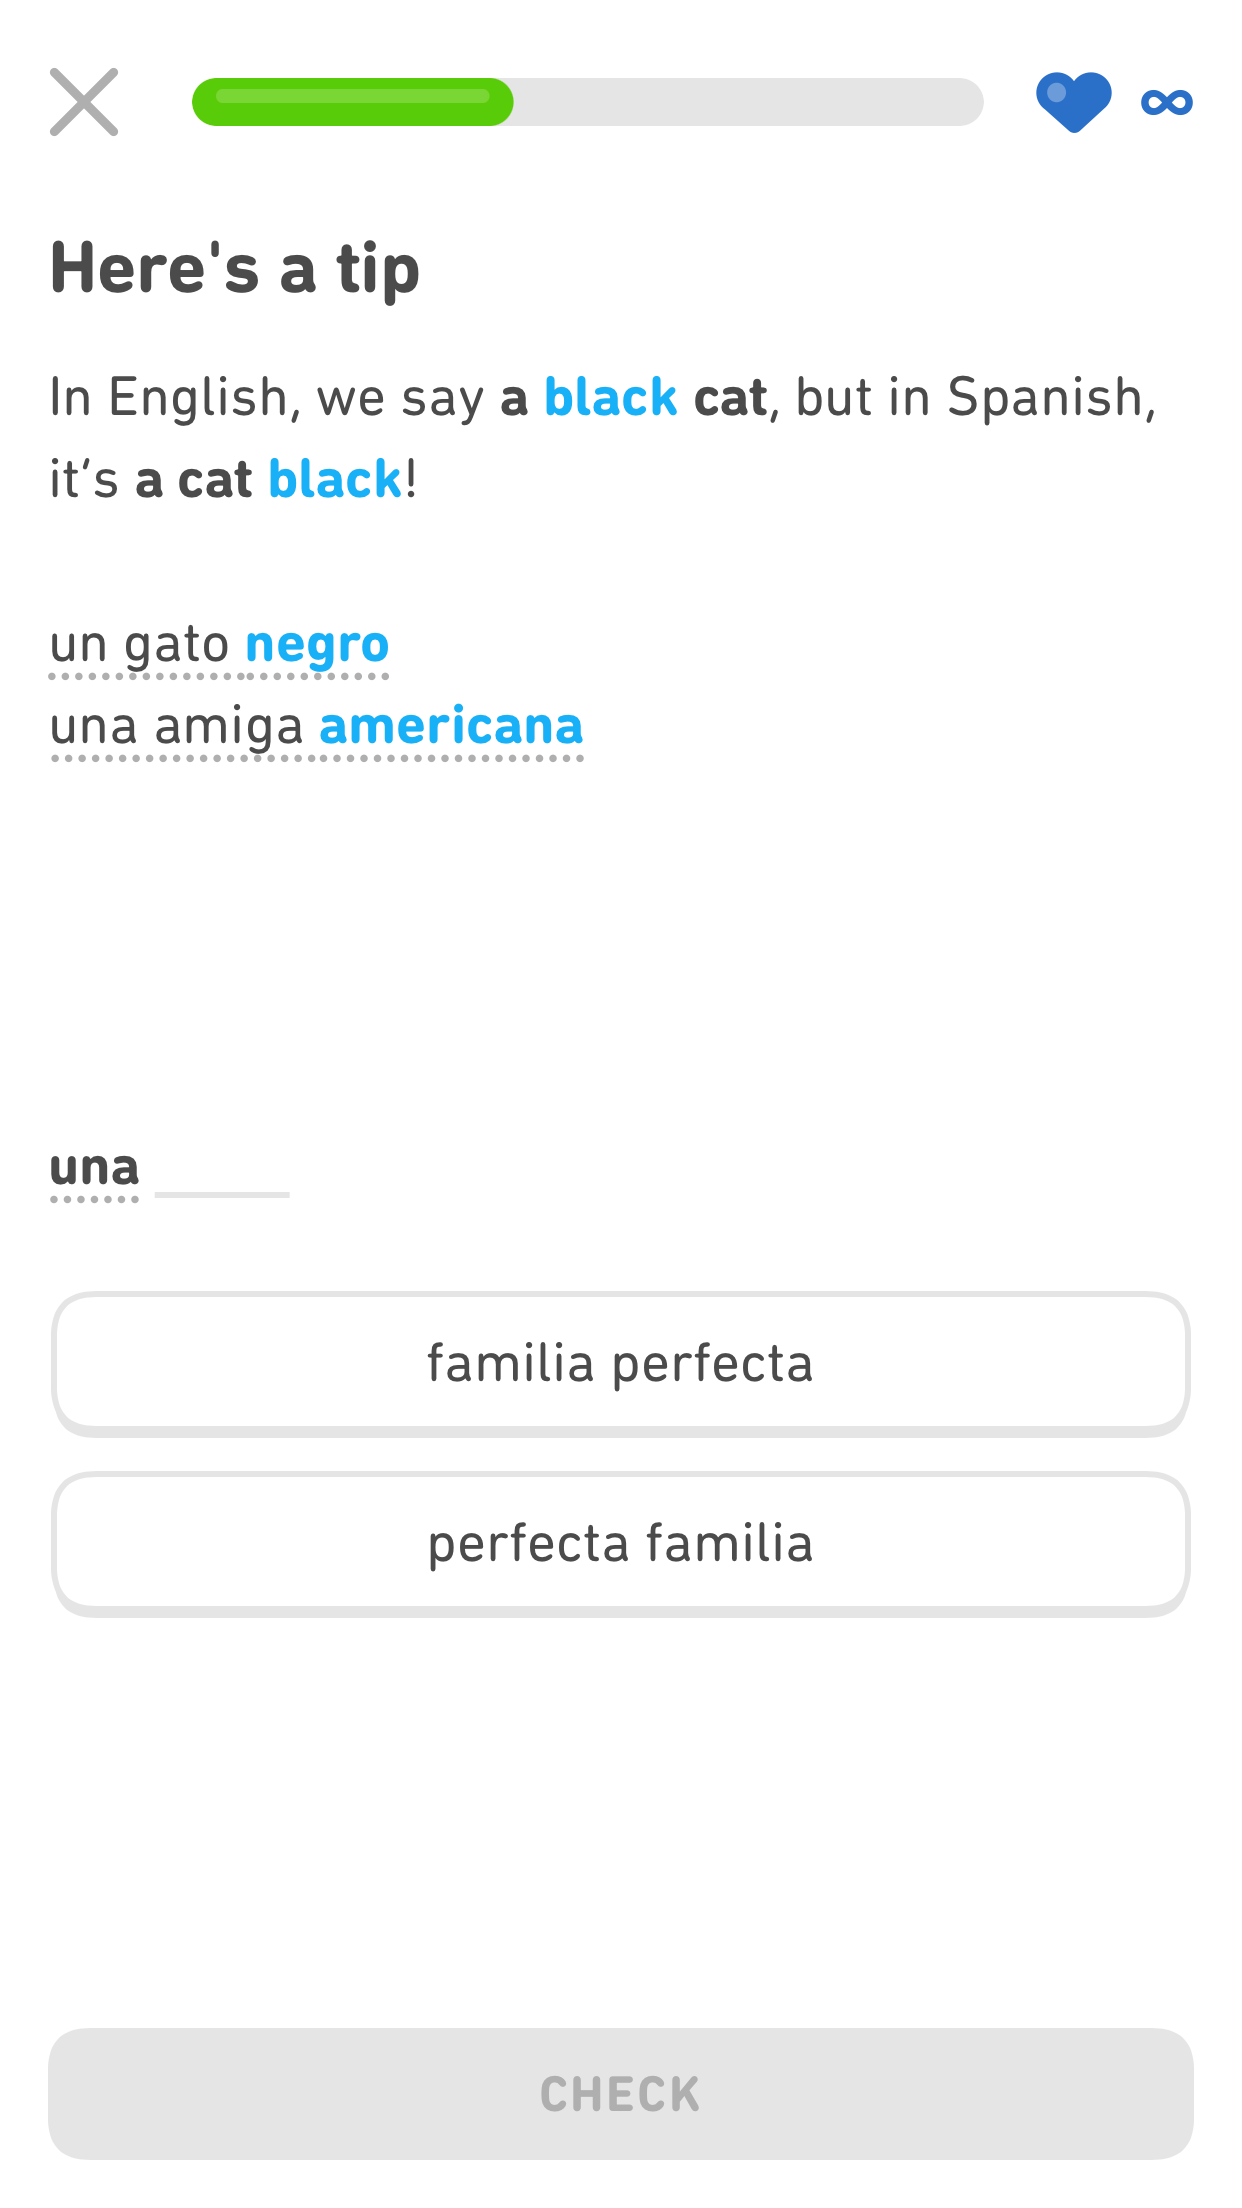 Screenshot of a Duolingo smart tip that says 'In English, we say a black cat, but in Spanish, it's a cat black!' The adjective